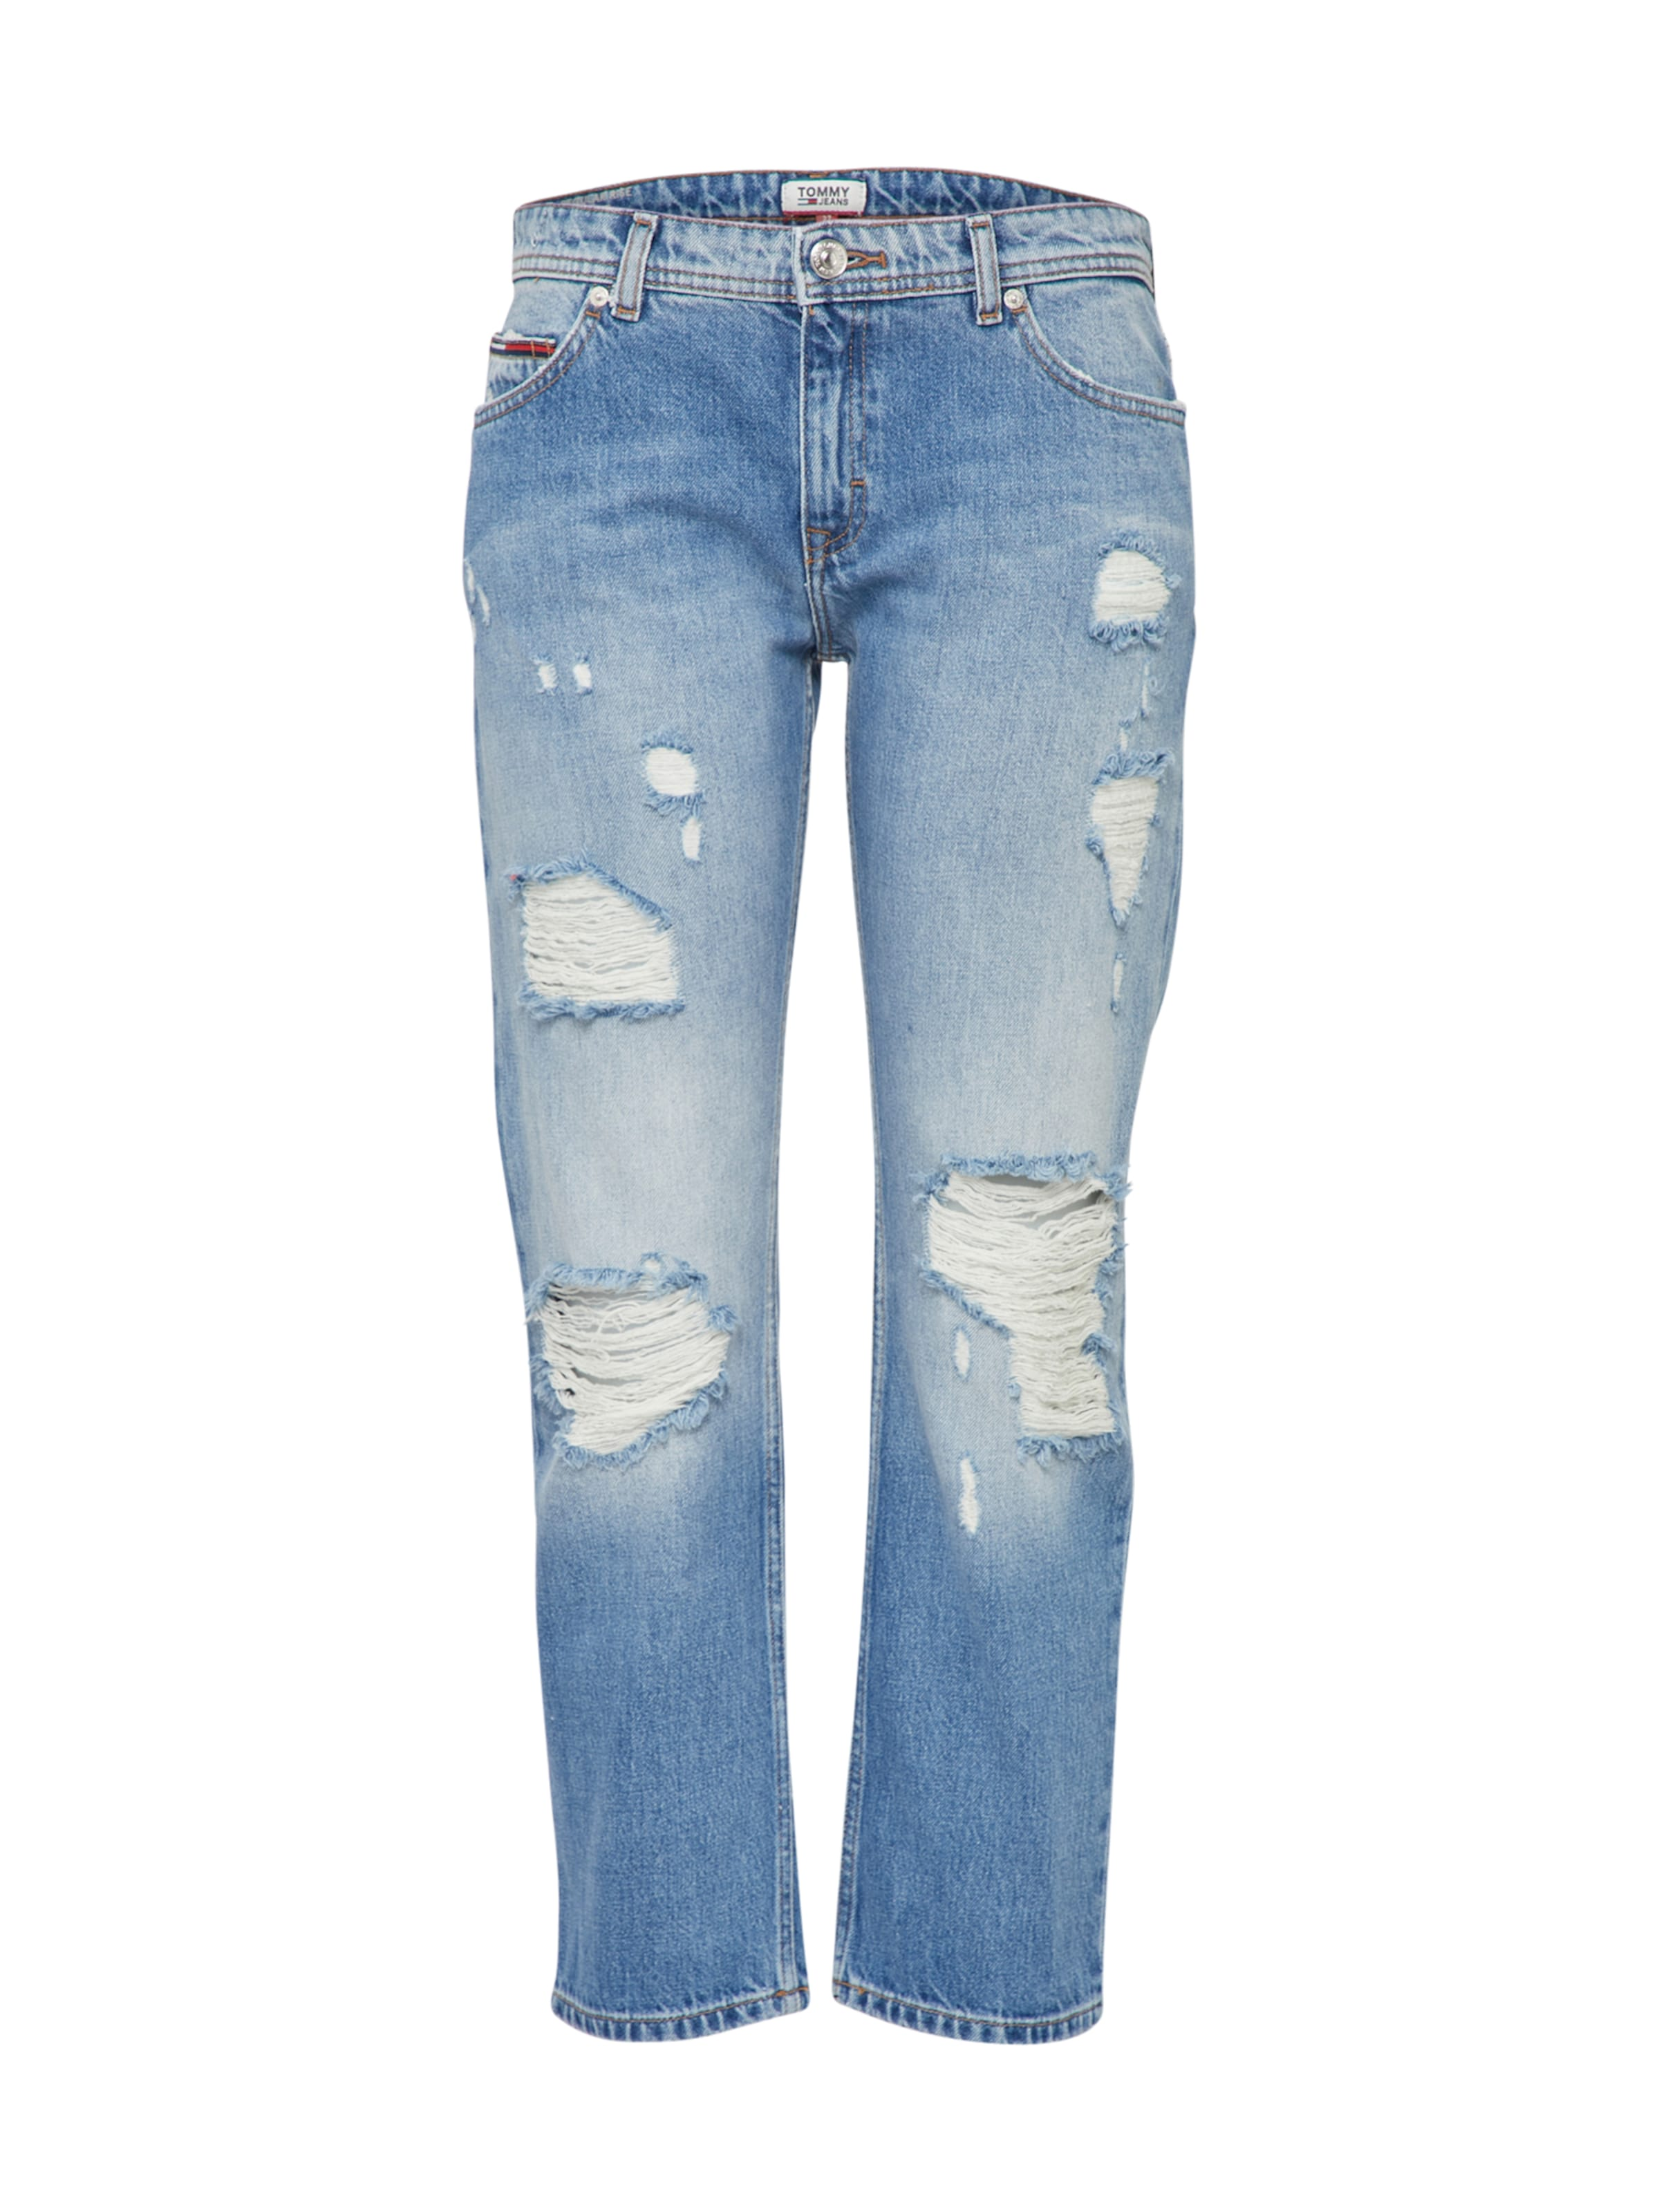 Denim In 'lana' Tommy Blue Jeans f76gyvIbY